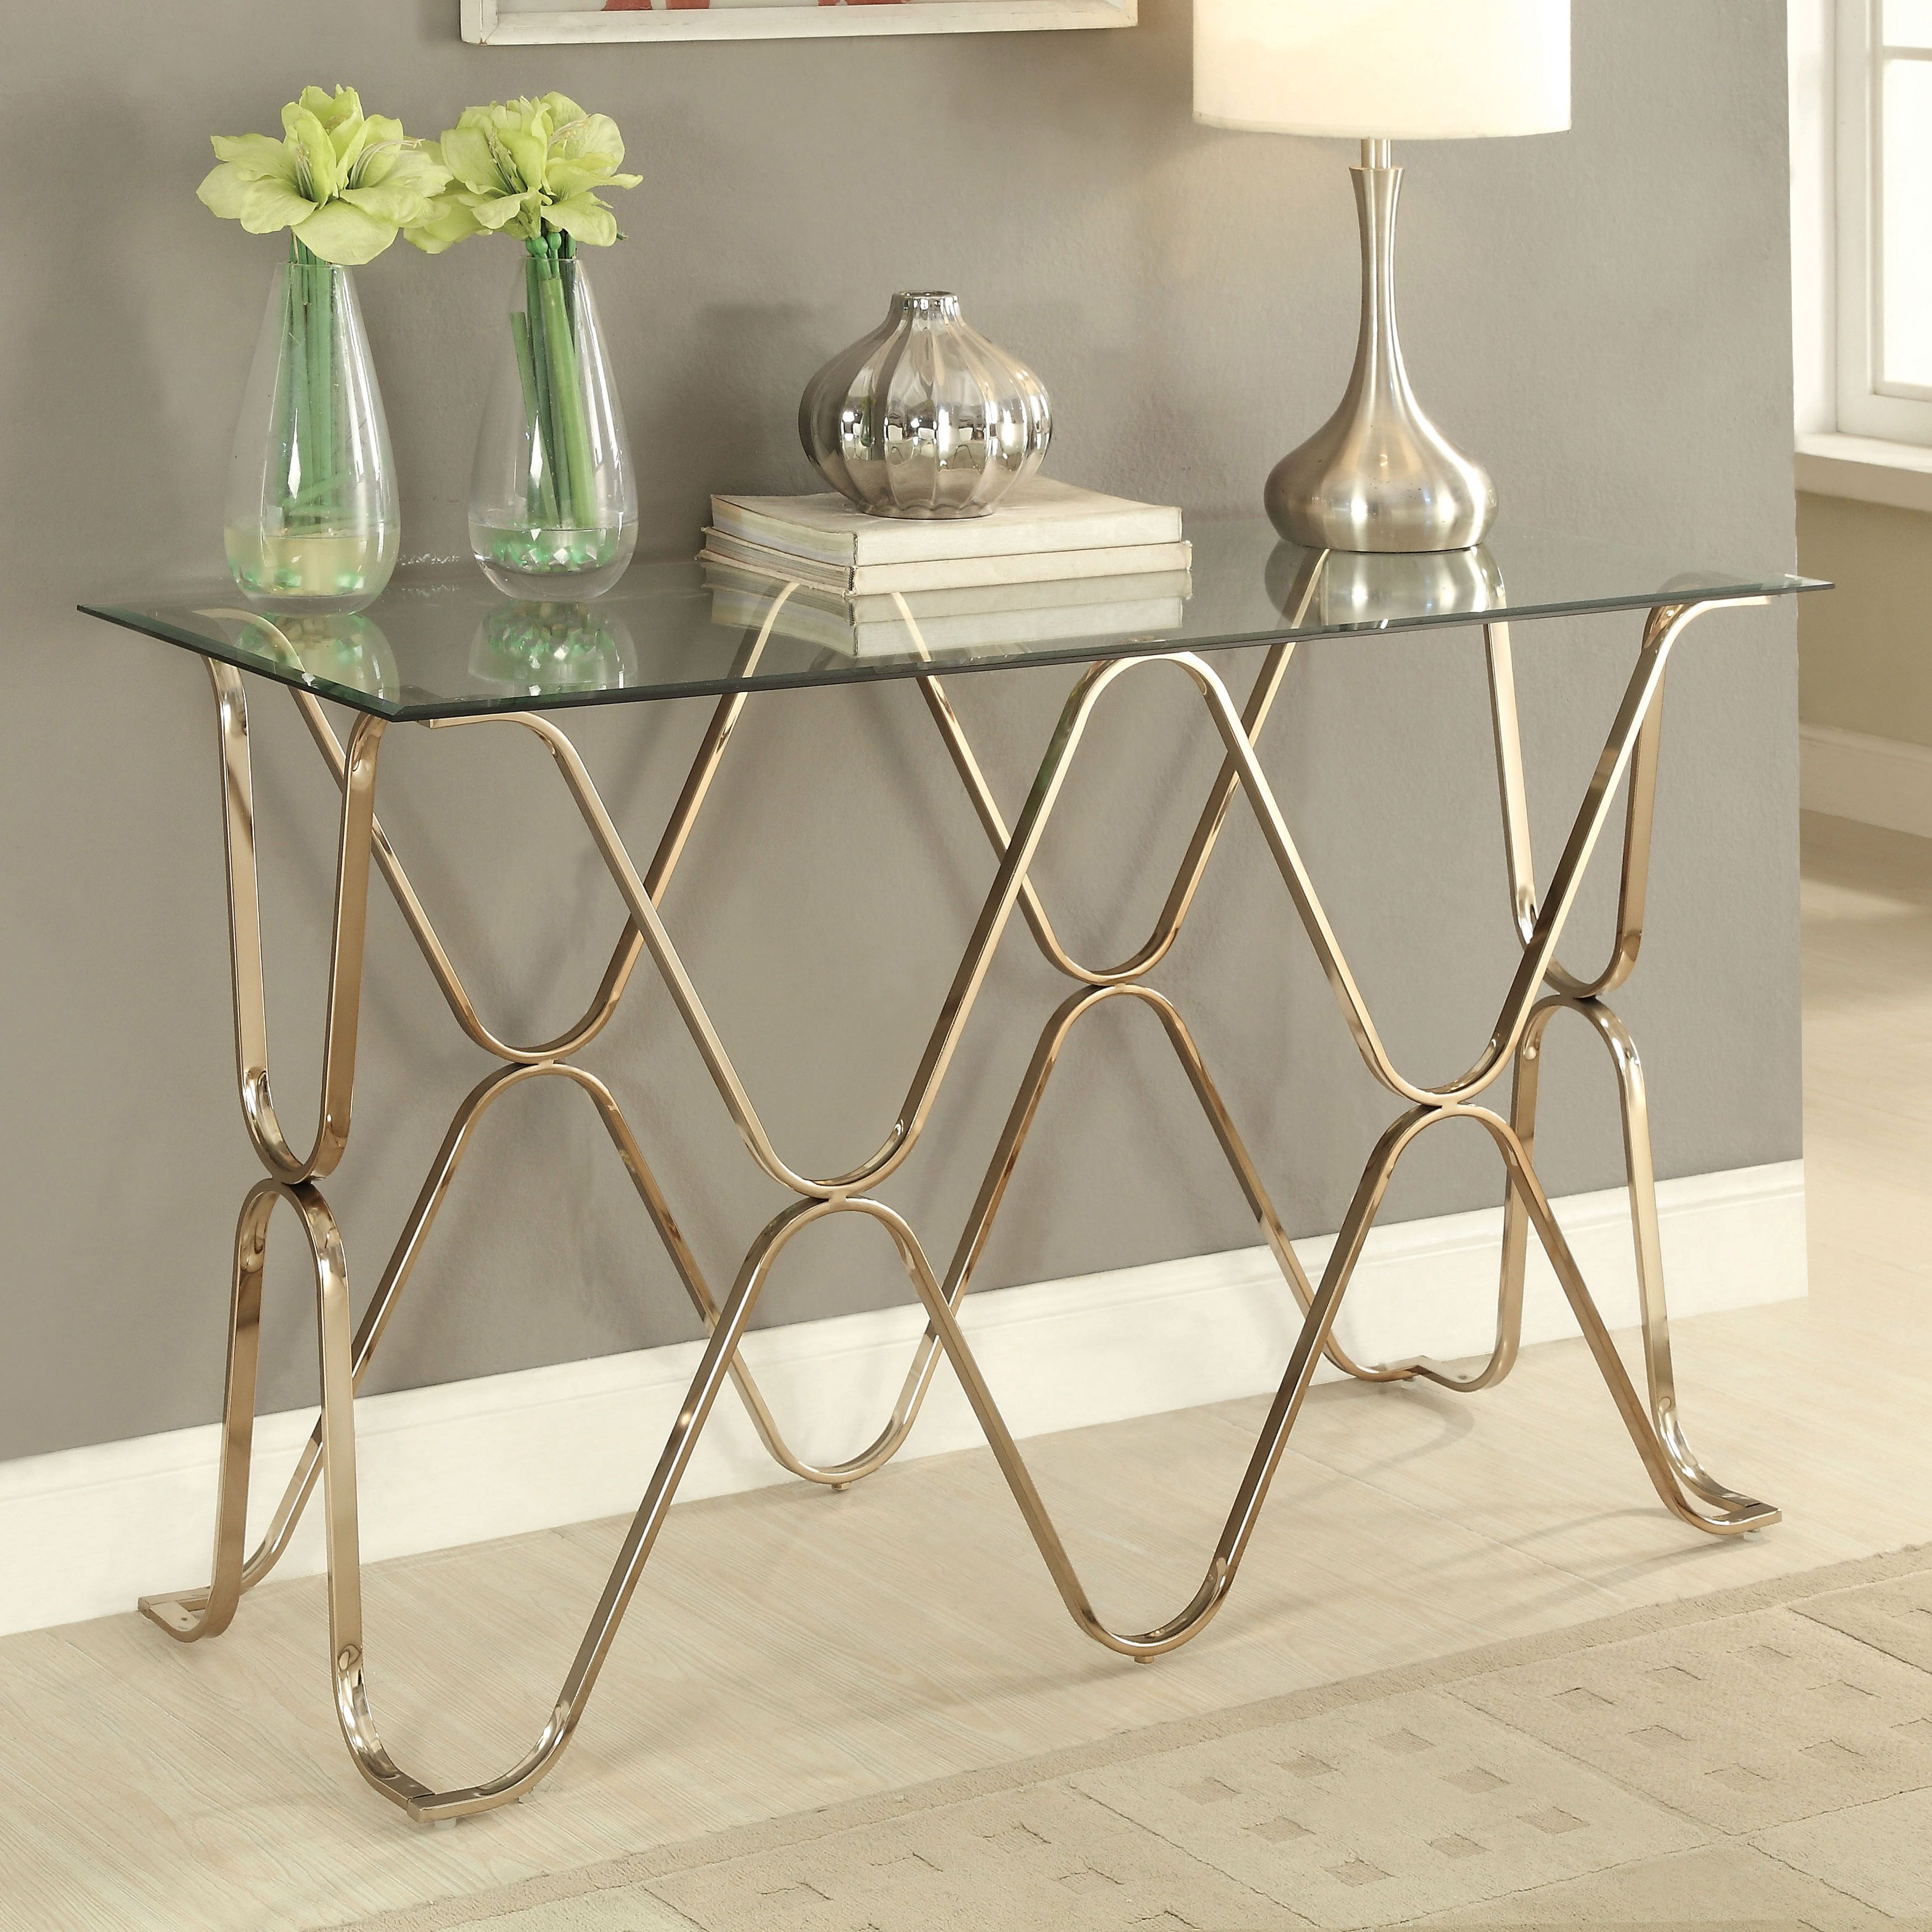 Furniture of america tellarie contemporary champagne sofa table by charming curves come together to provide a unique and shined base for this contemporary sofa table geotapseo Choice Image